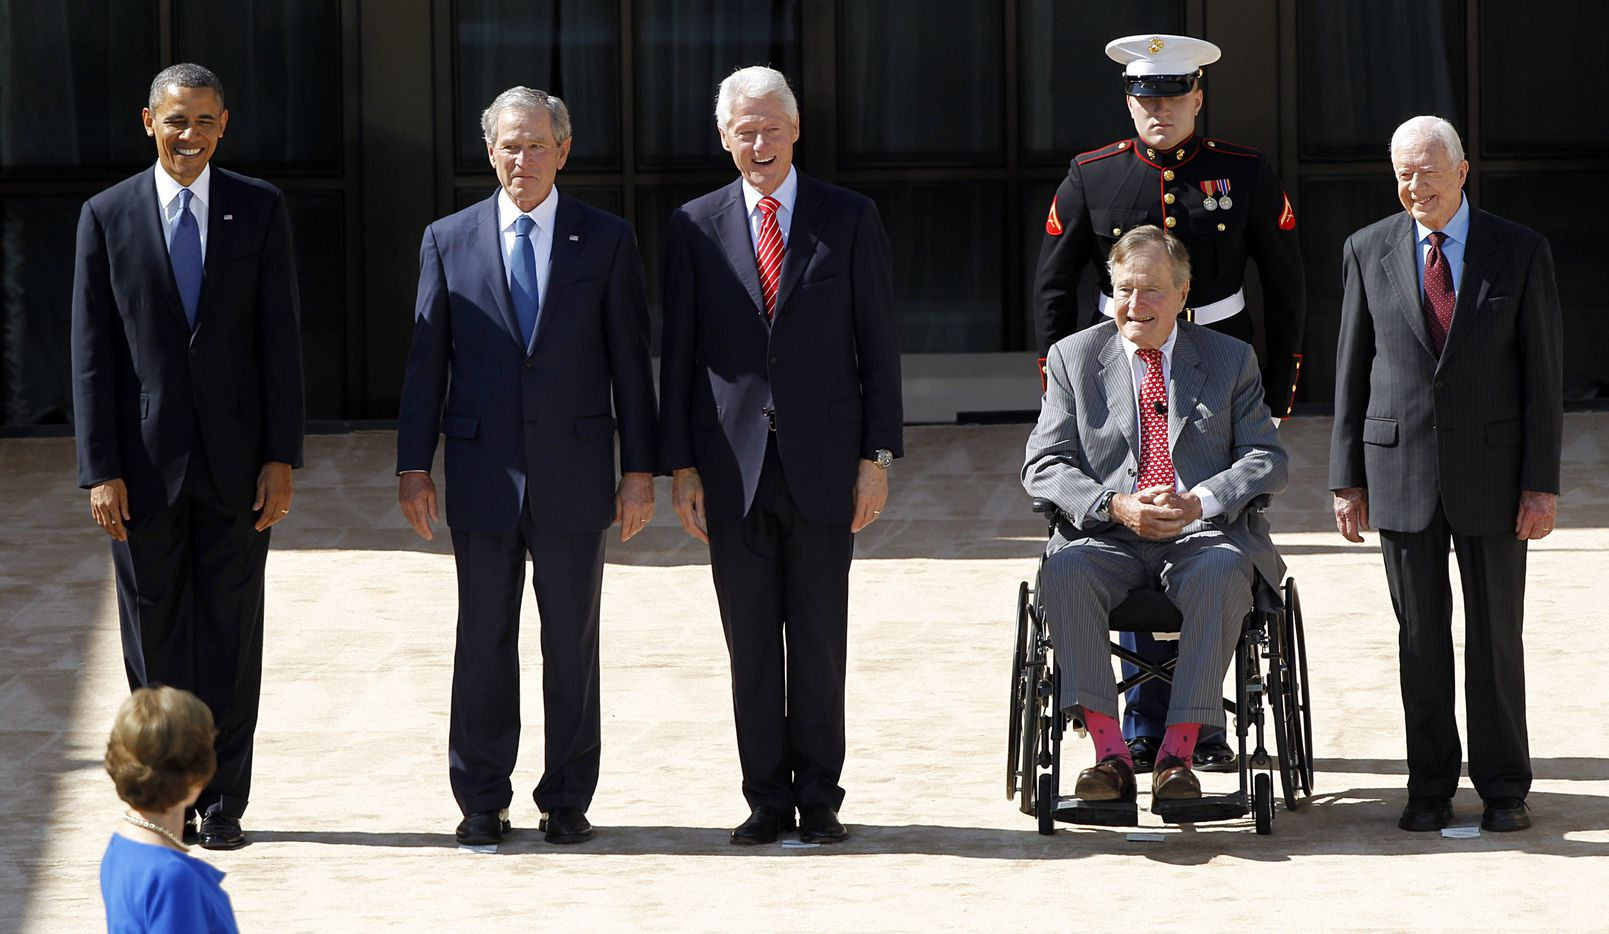 Former first lady Laura Bush looked on as former presidents (from left) Barack Obama, George W. Bush, Bill Clinton, George H.W. Bush and Jimmy Carter were introduced at the George W. Bush Presidential Center dedication on April 25, 2013.